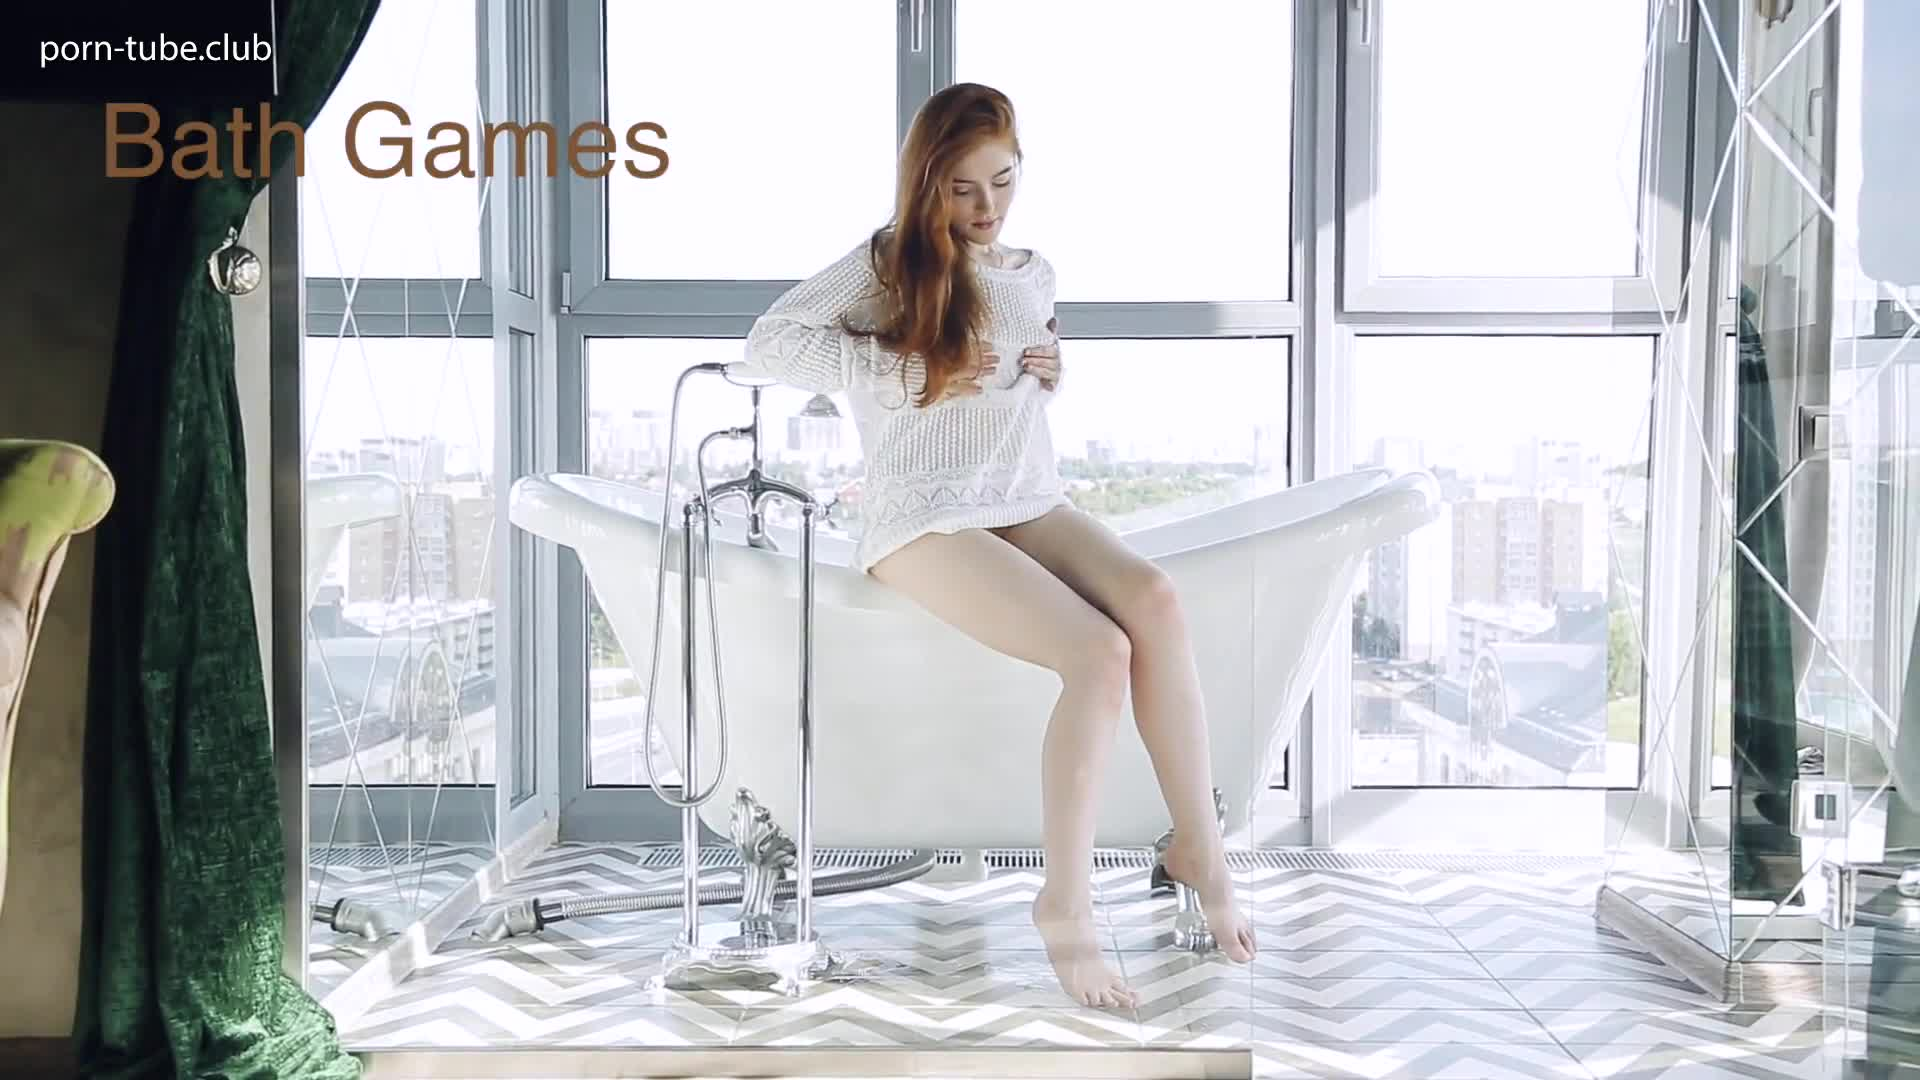 Errotica-Archives 17.10.15 Jia Lissa Bath Games